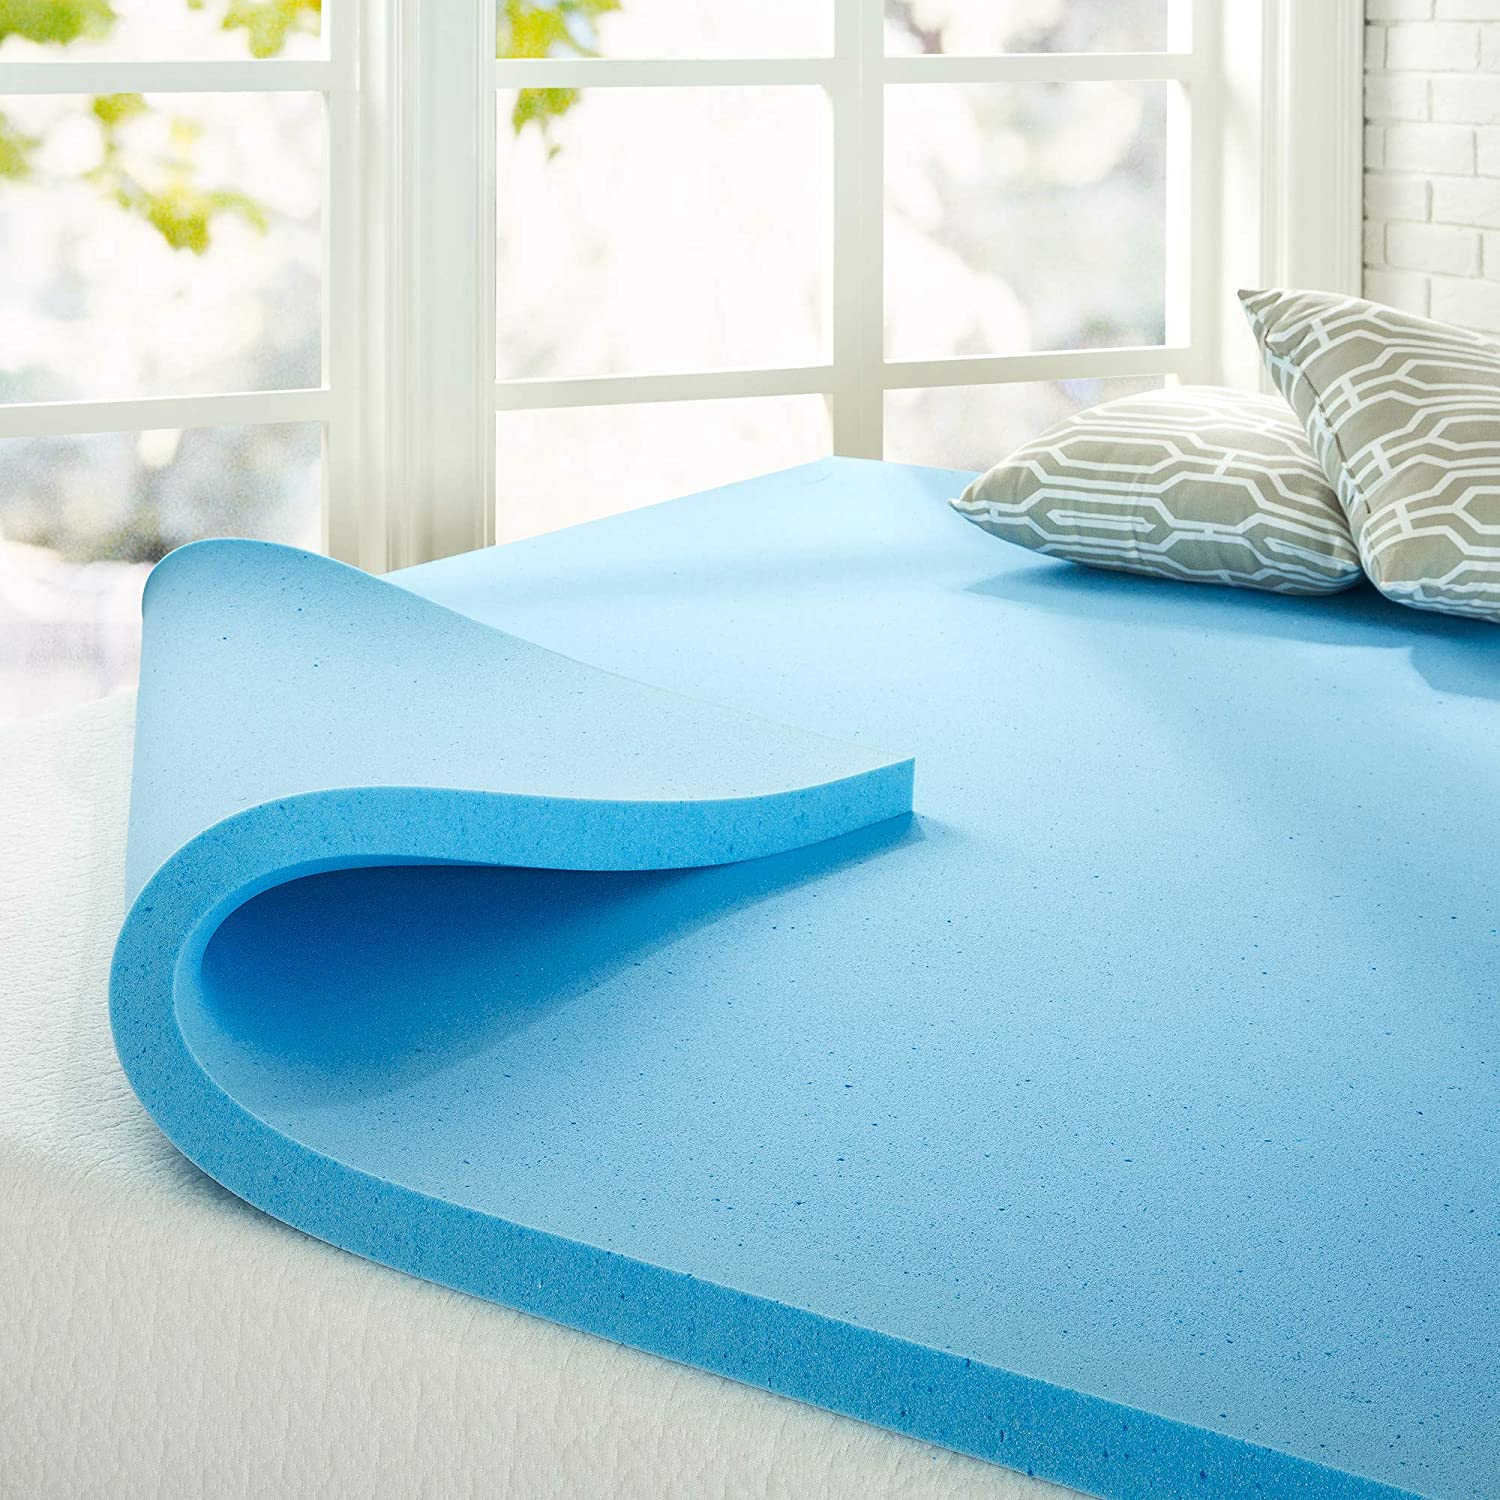 Gel vs. memory foam mattress toppers are both non-toxic.